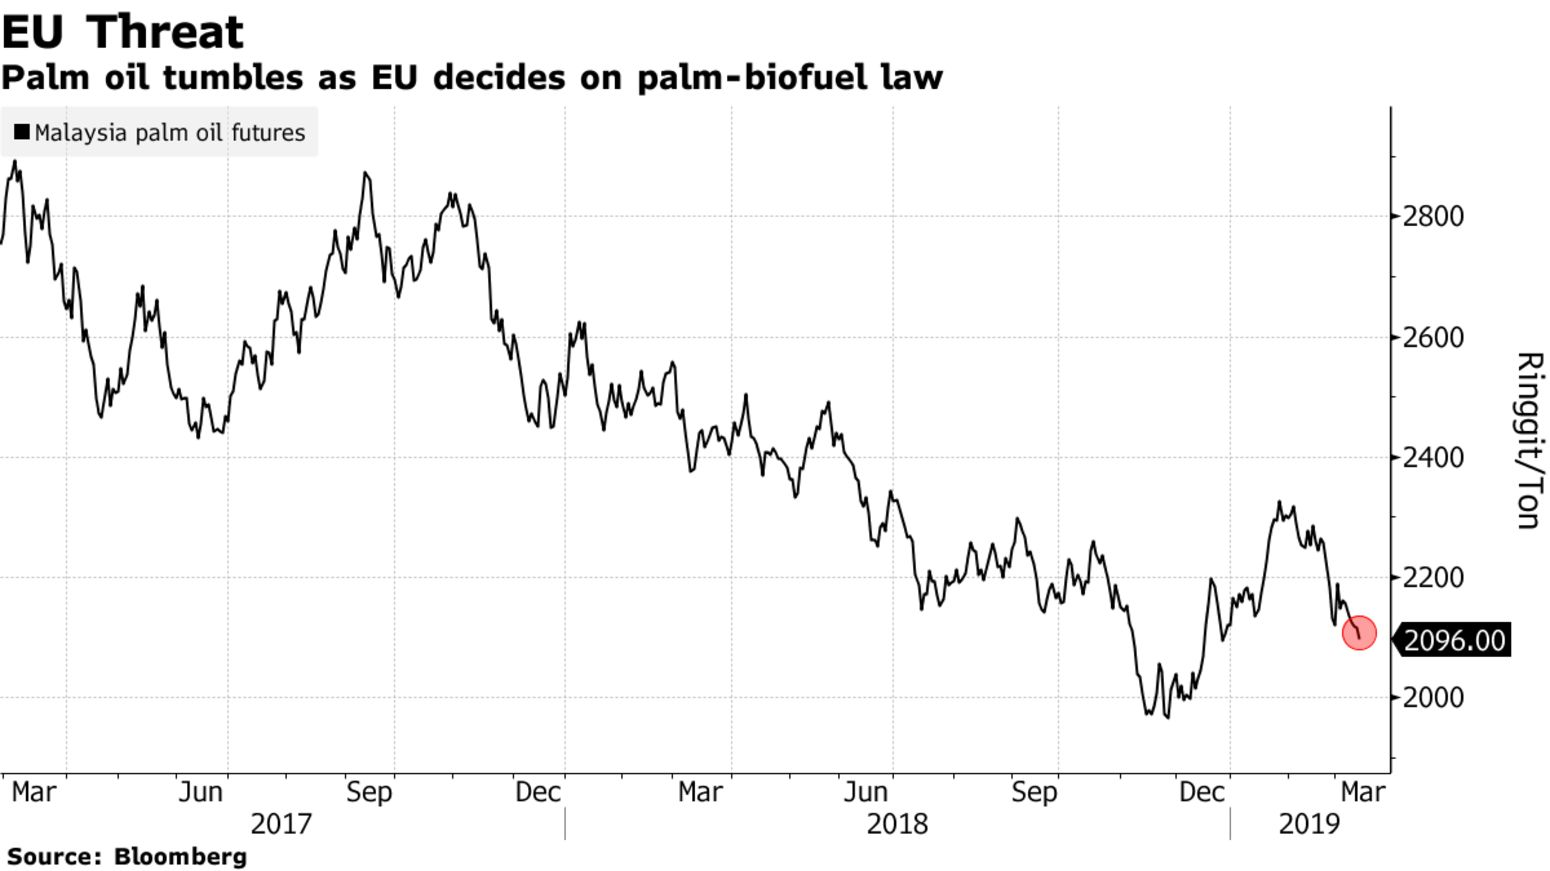 Palm oil tumbles as EU decides on palm-biofuel law